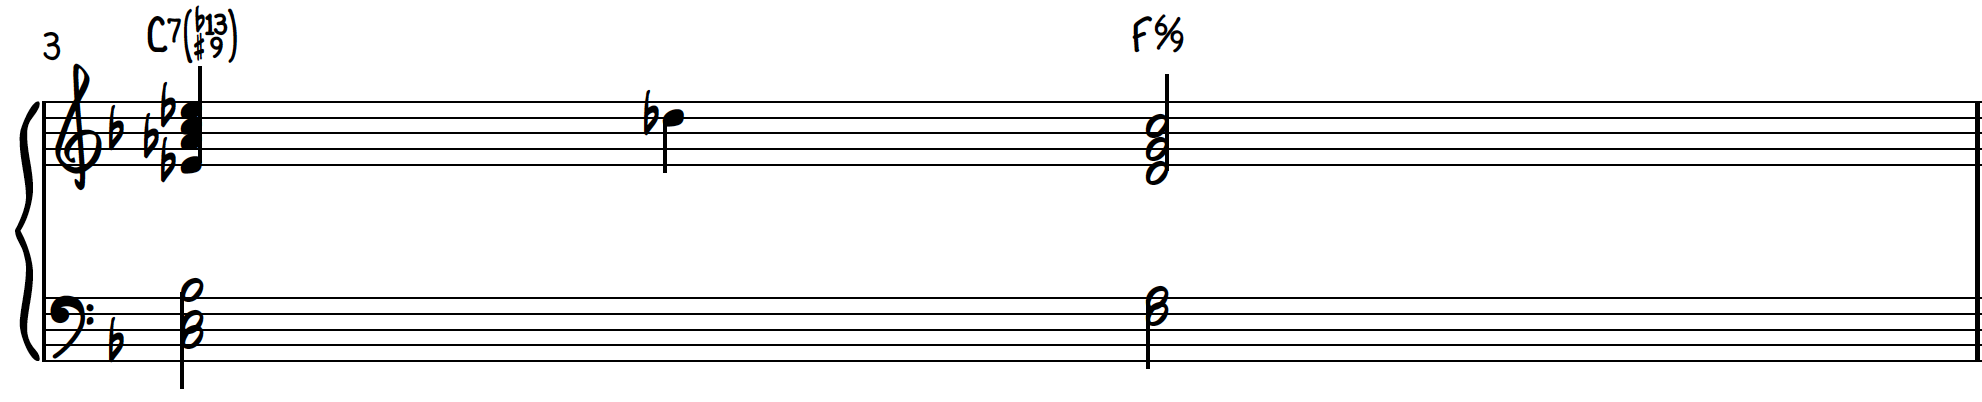 How to use Dissonant Chord 1 in a jazz piano progression